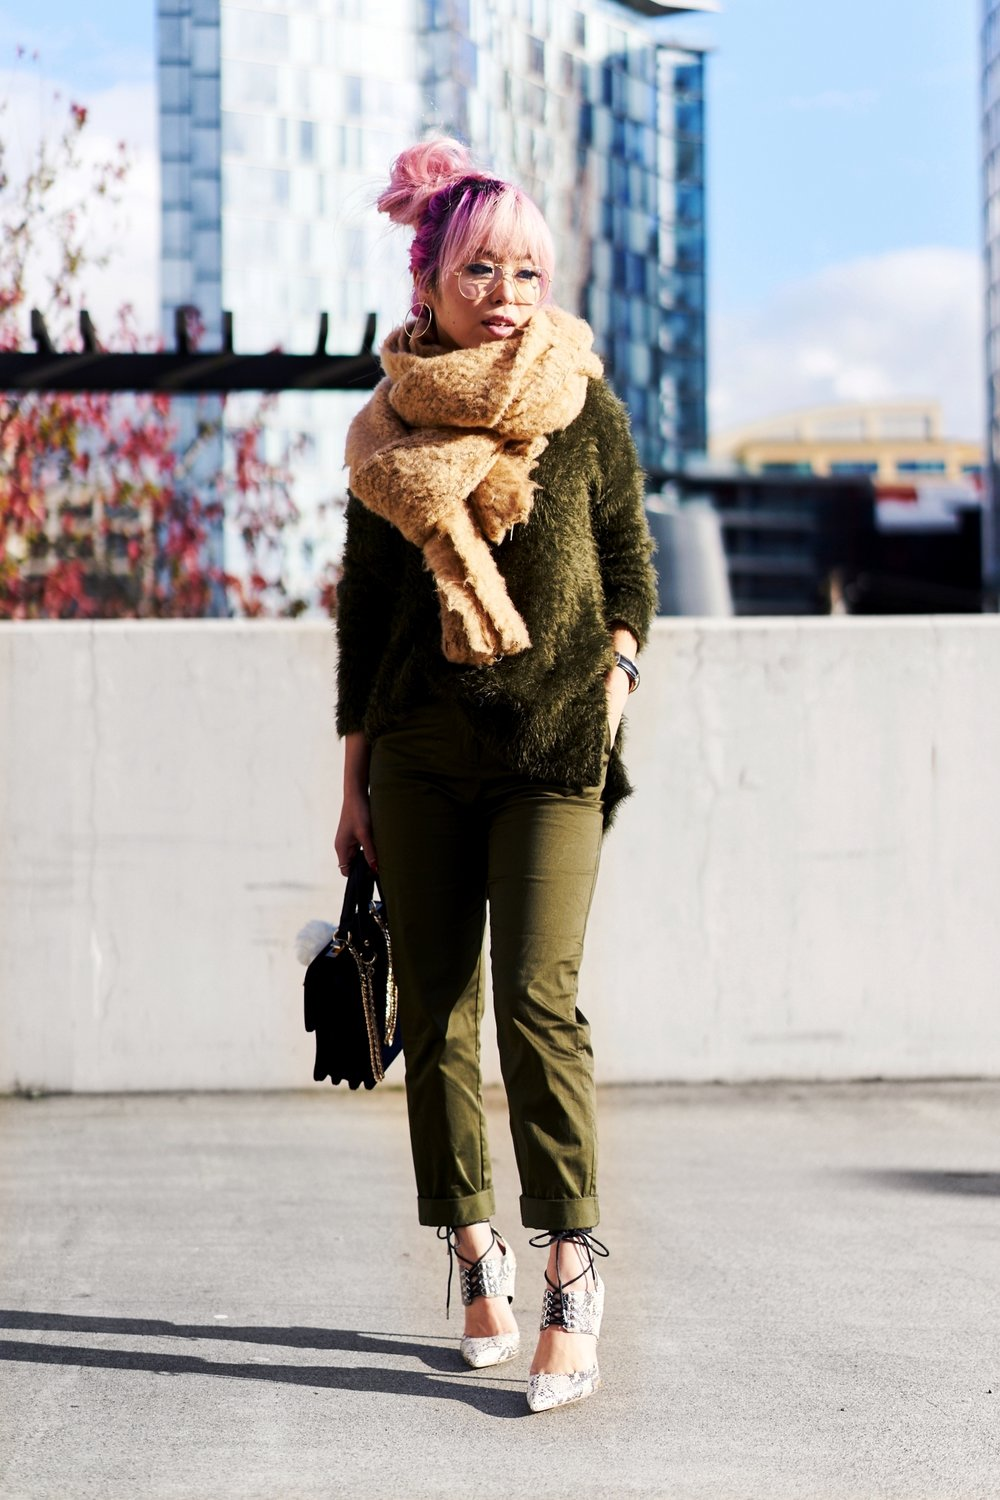 ASOS Oversized Scarf-H&M olive chunky sweater-H&M cropped trousers-ASOS python lace-up pumps-ZARA navy velvet bag-mango earrings-Daniel Wellington Watch-Clear Lens aviator-Aika's Love Closet-Seattle Style blogger-japanese-pink hair-colored hair 2